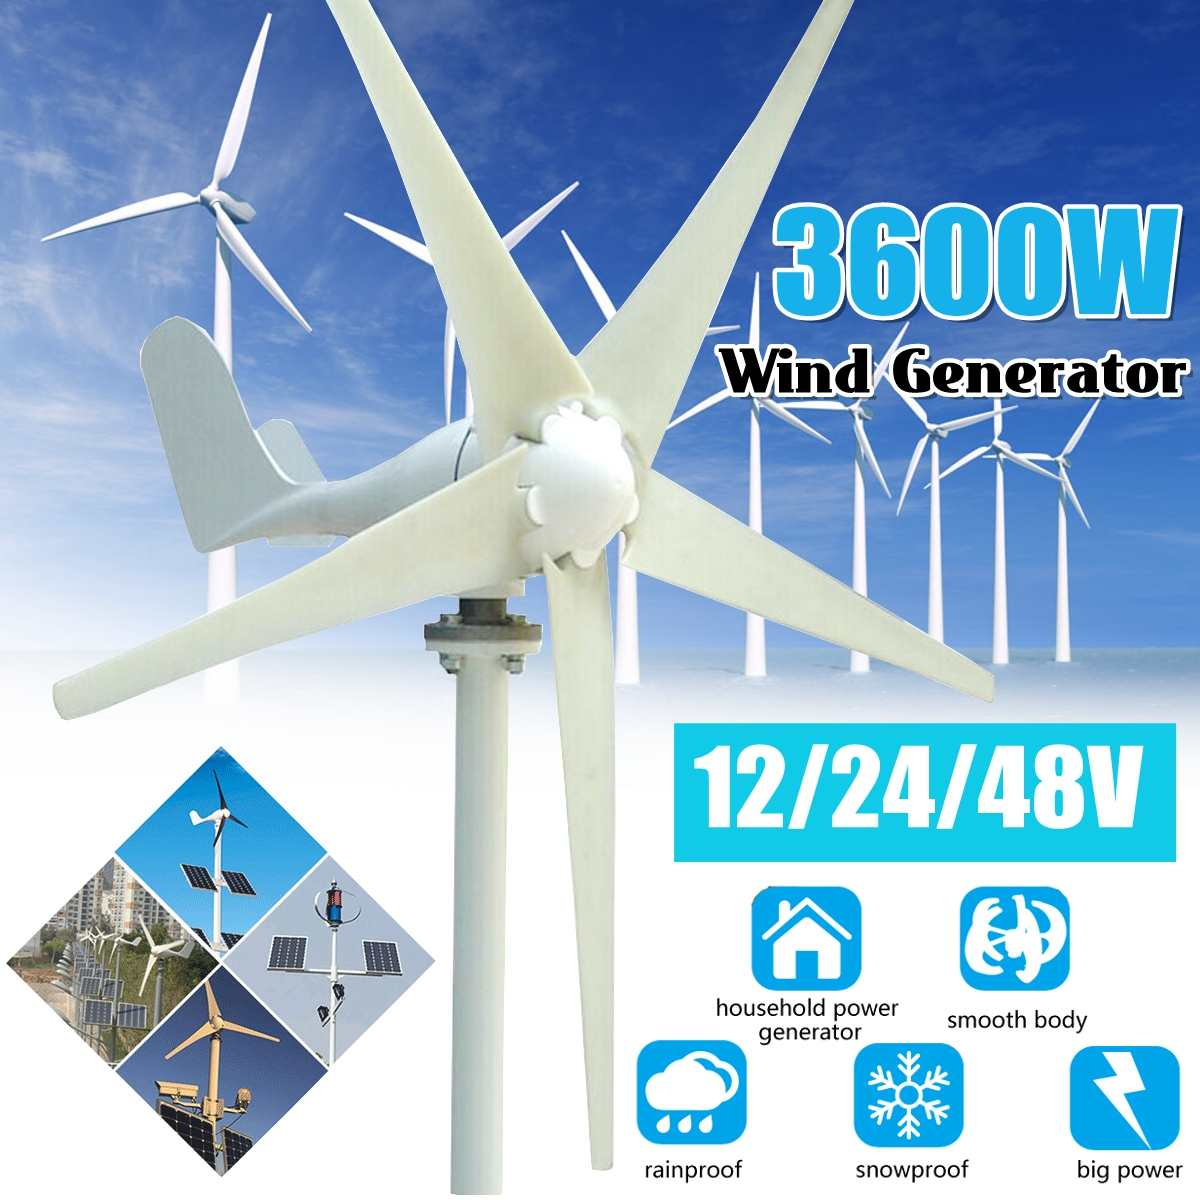 3600W Wind Turbines Generator+ Wind Controller 12V 24V 48V 5 Blades Horizontal Axis Permanent Magnet Generator for Home Street